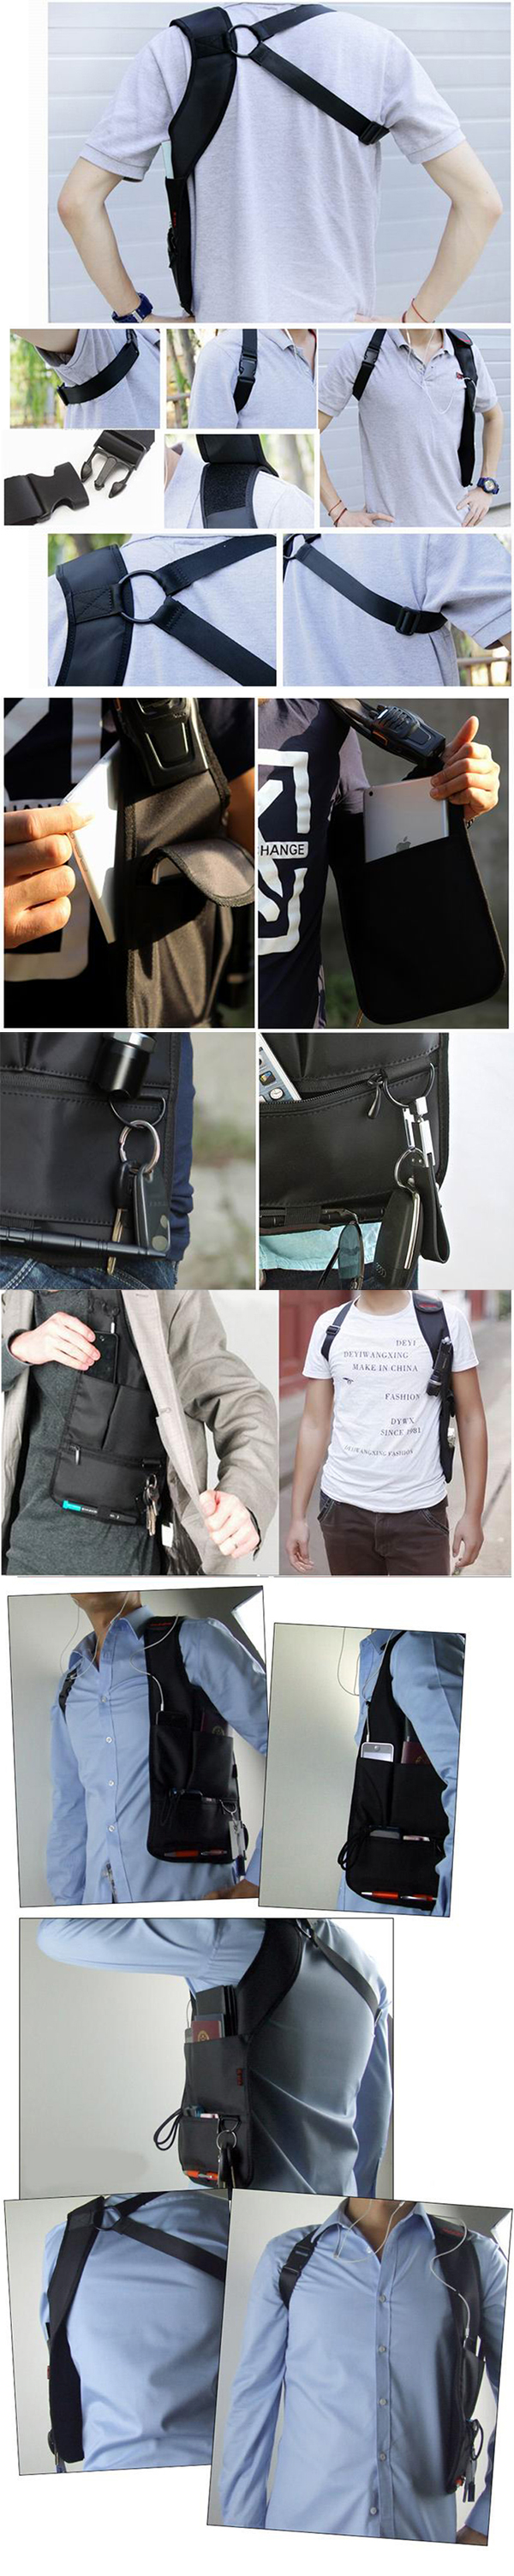 Anti Theft Armpit Cross-package Security Holster Strap Messenger Bags Underarm Phone Burglarproof